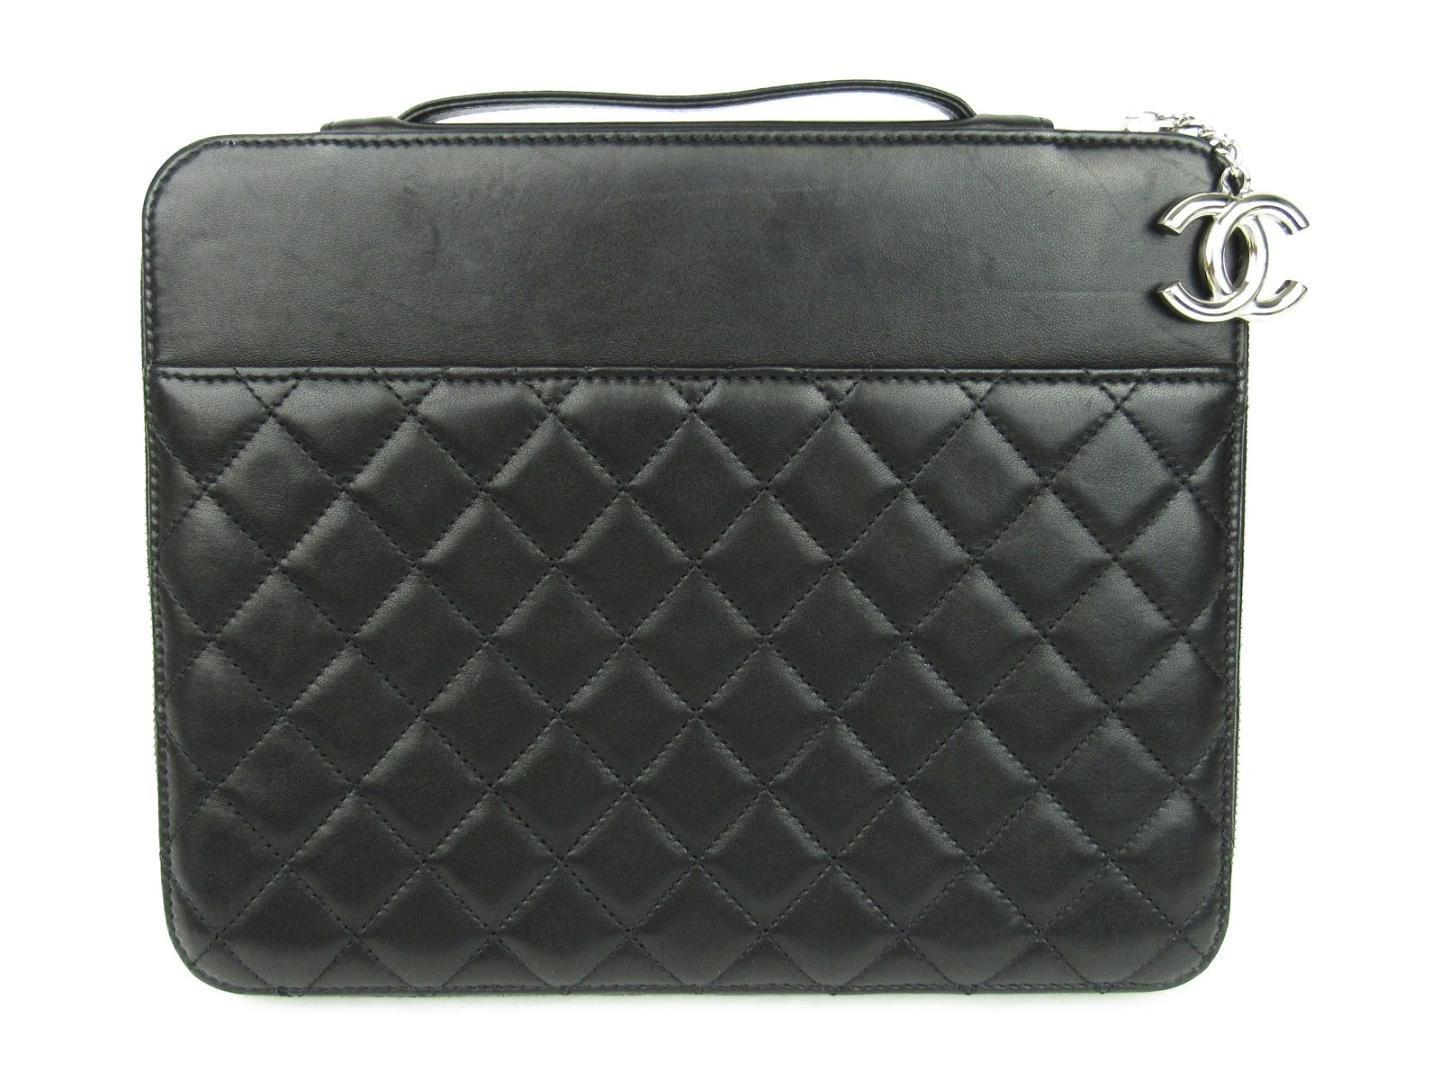 29391ea08960 Chanel Authentic Ipad Case Lambskin Leather Black Used Vintage in ...